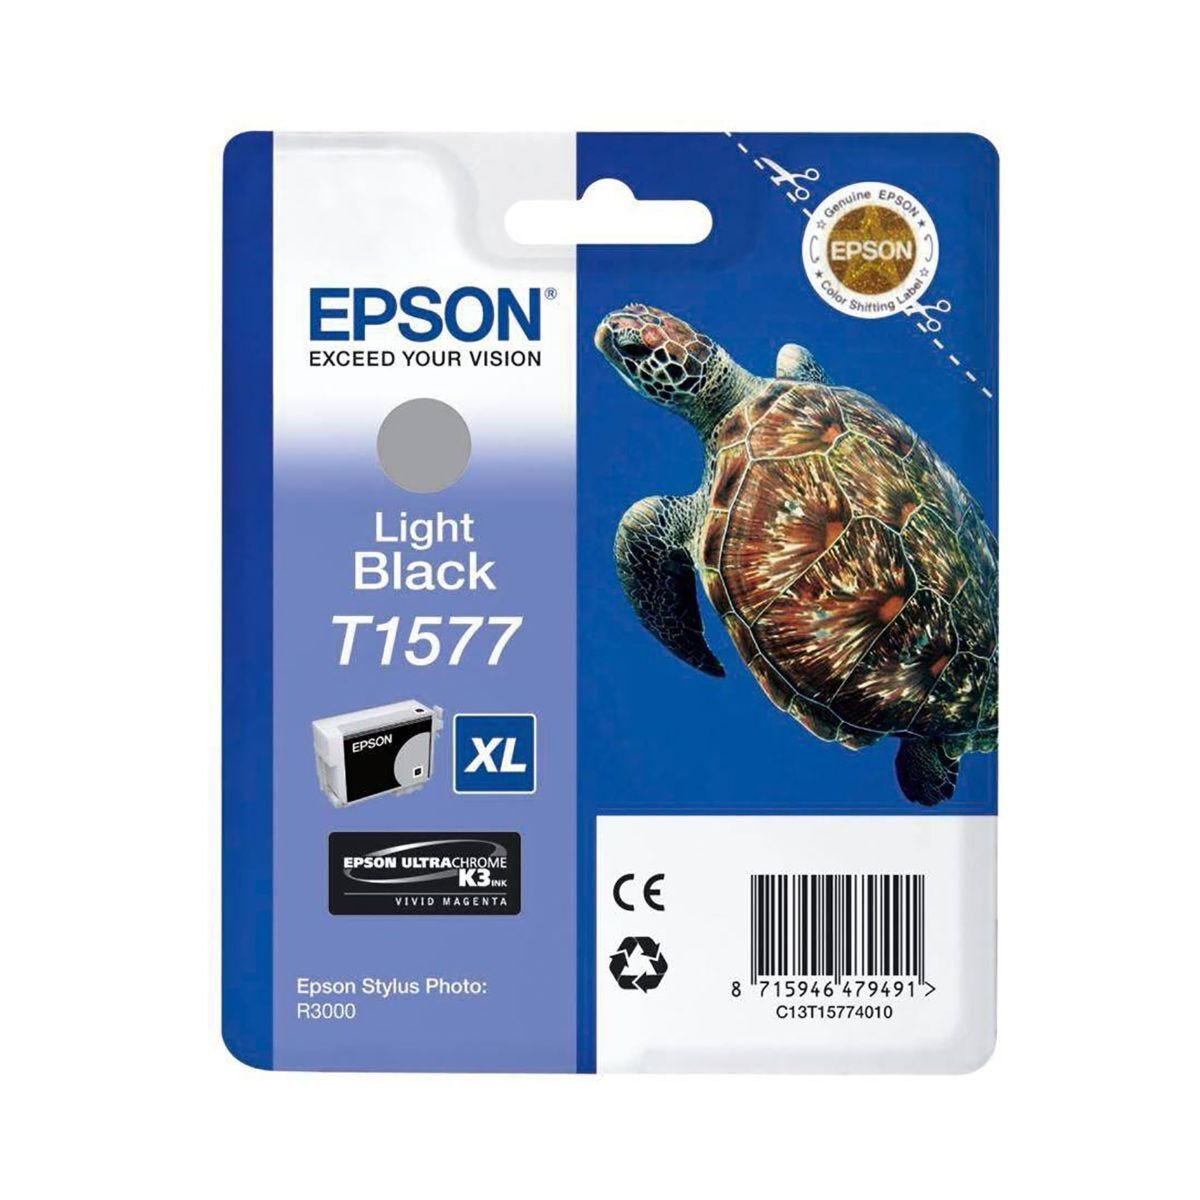 Epson R3000 Light Black Ink Cartridge